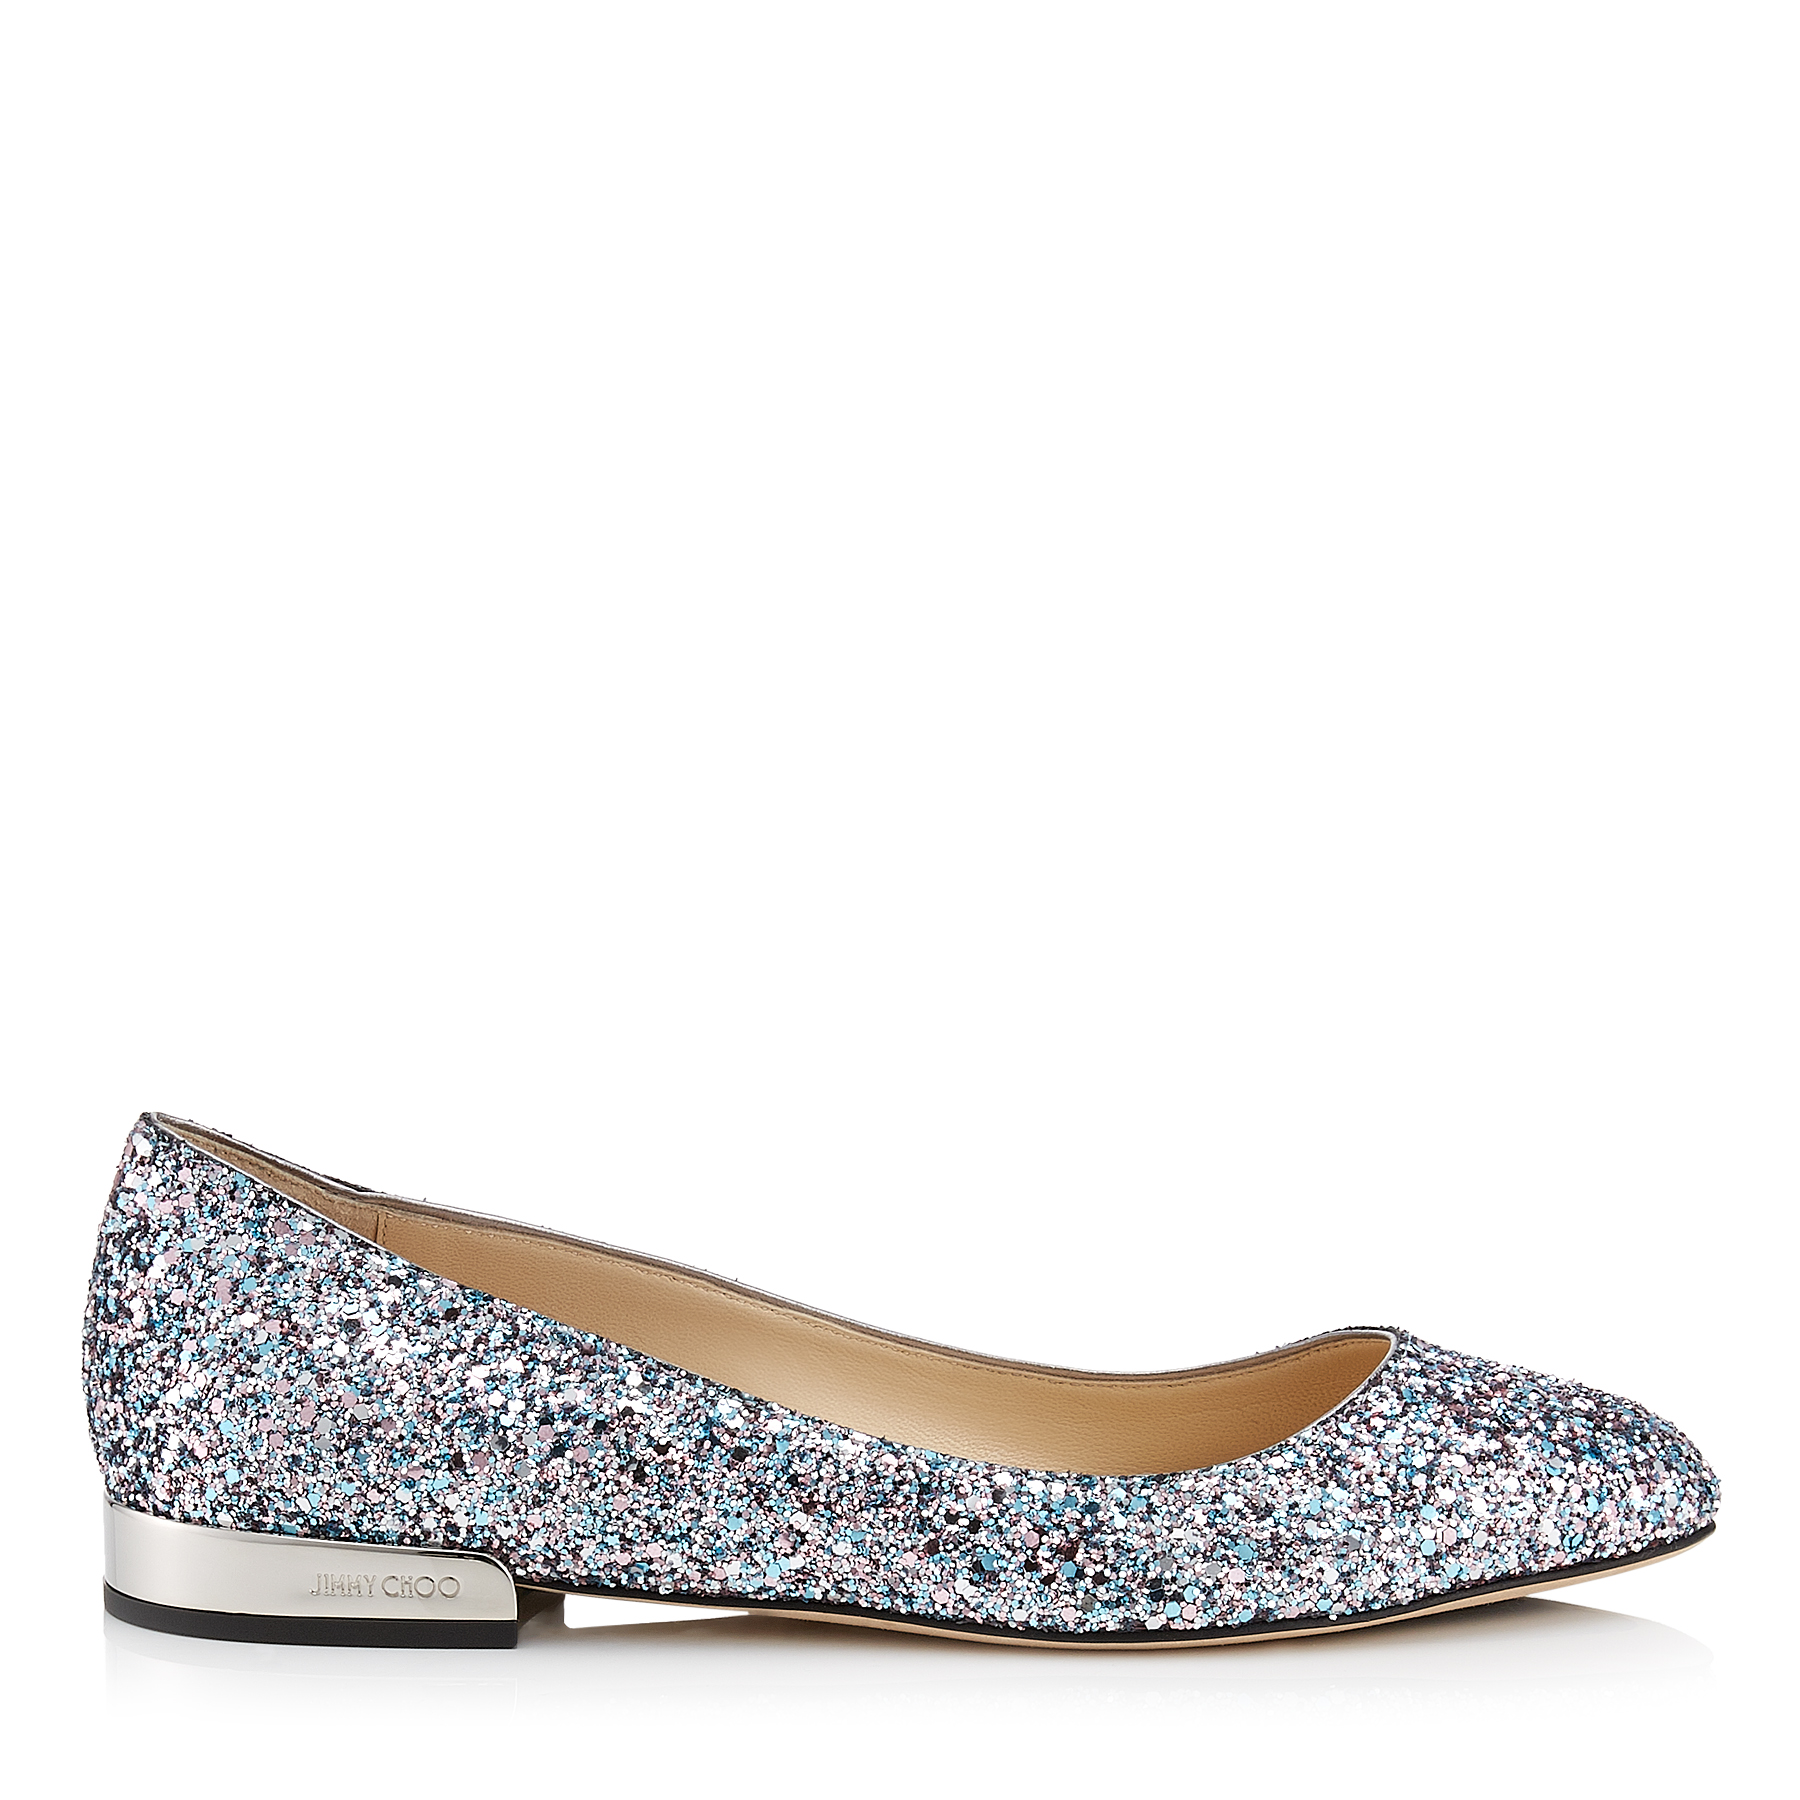 JESSIE FLAT Bubblegum Coarse Glitter Fabric Round Toe Pumps by Jimmy Choo